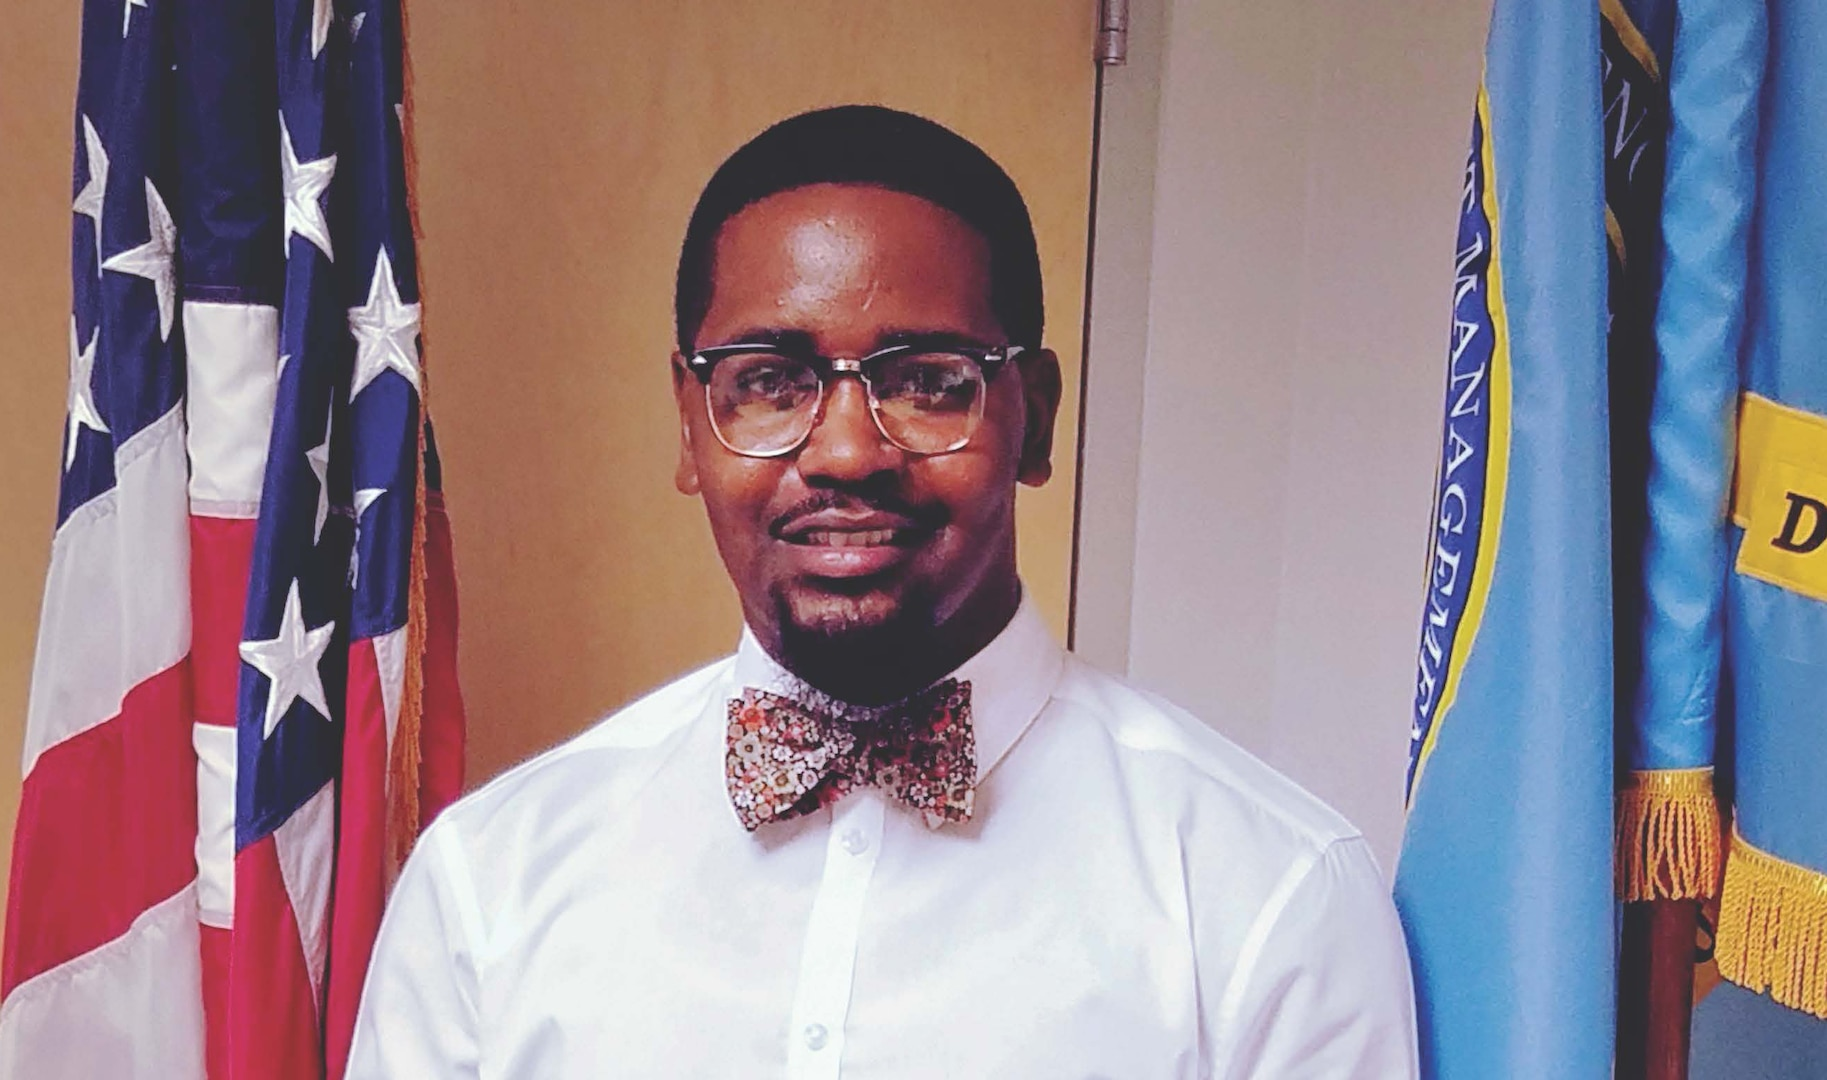 Jamal A. Hoover is a contract administrator at DCMA Aircraft Propulsion Operations Rolls Royce in Indianapolis, Indiana. He has been a part of the DCMA team for almost five years. (Photo courtesy of Brandi Hobgood)